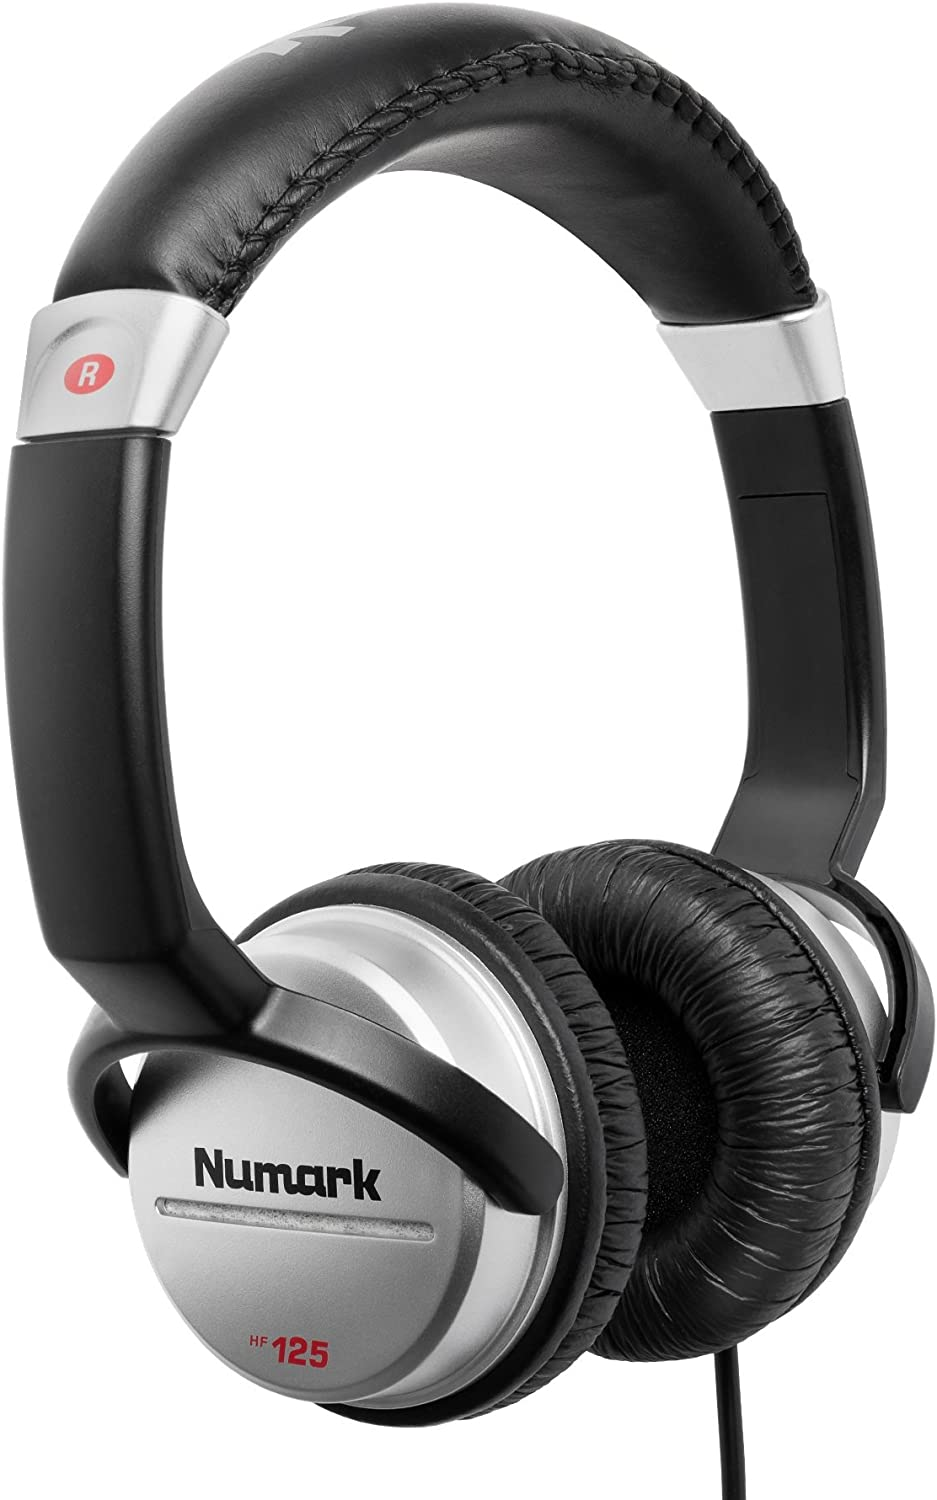 This headphone is made of the special materials and one of the best headphones for the digital and simple piano